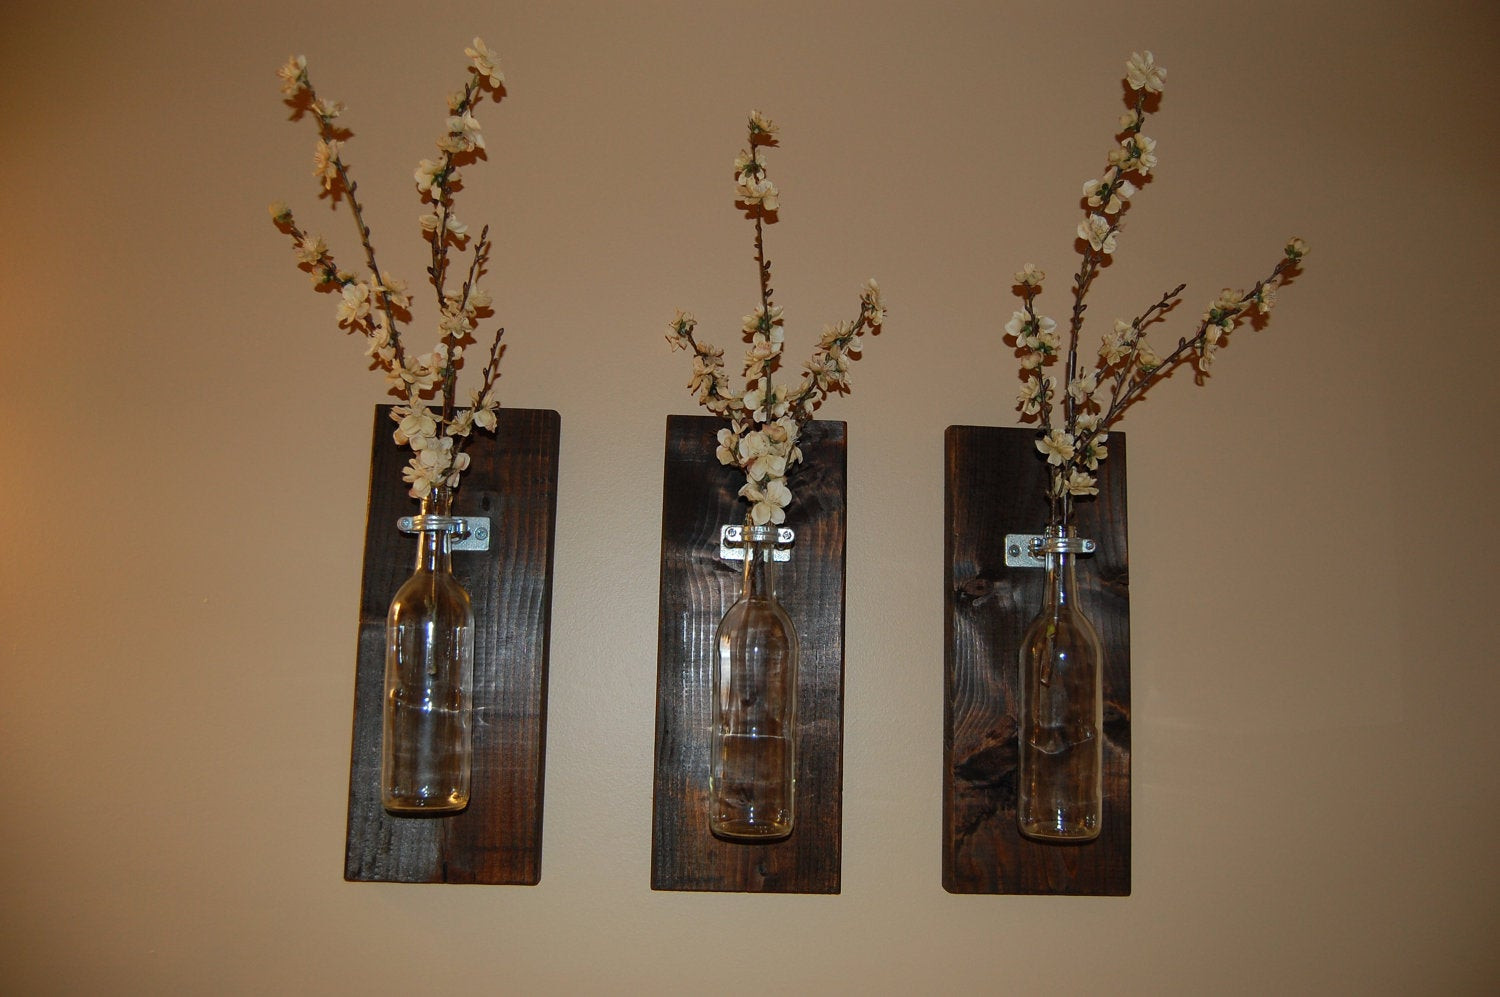 Handmade Wall Decor Wine Bottle Wall Art Wall Vase Handmade by Bloominghomedesigns